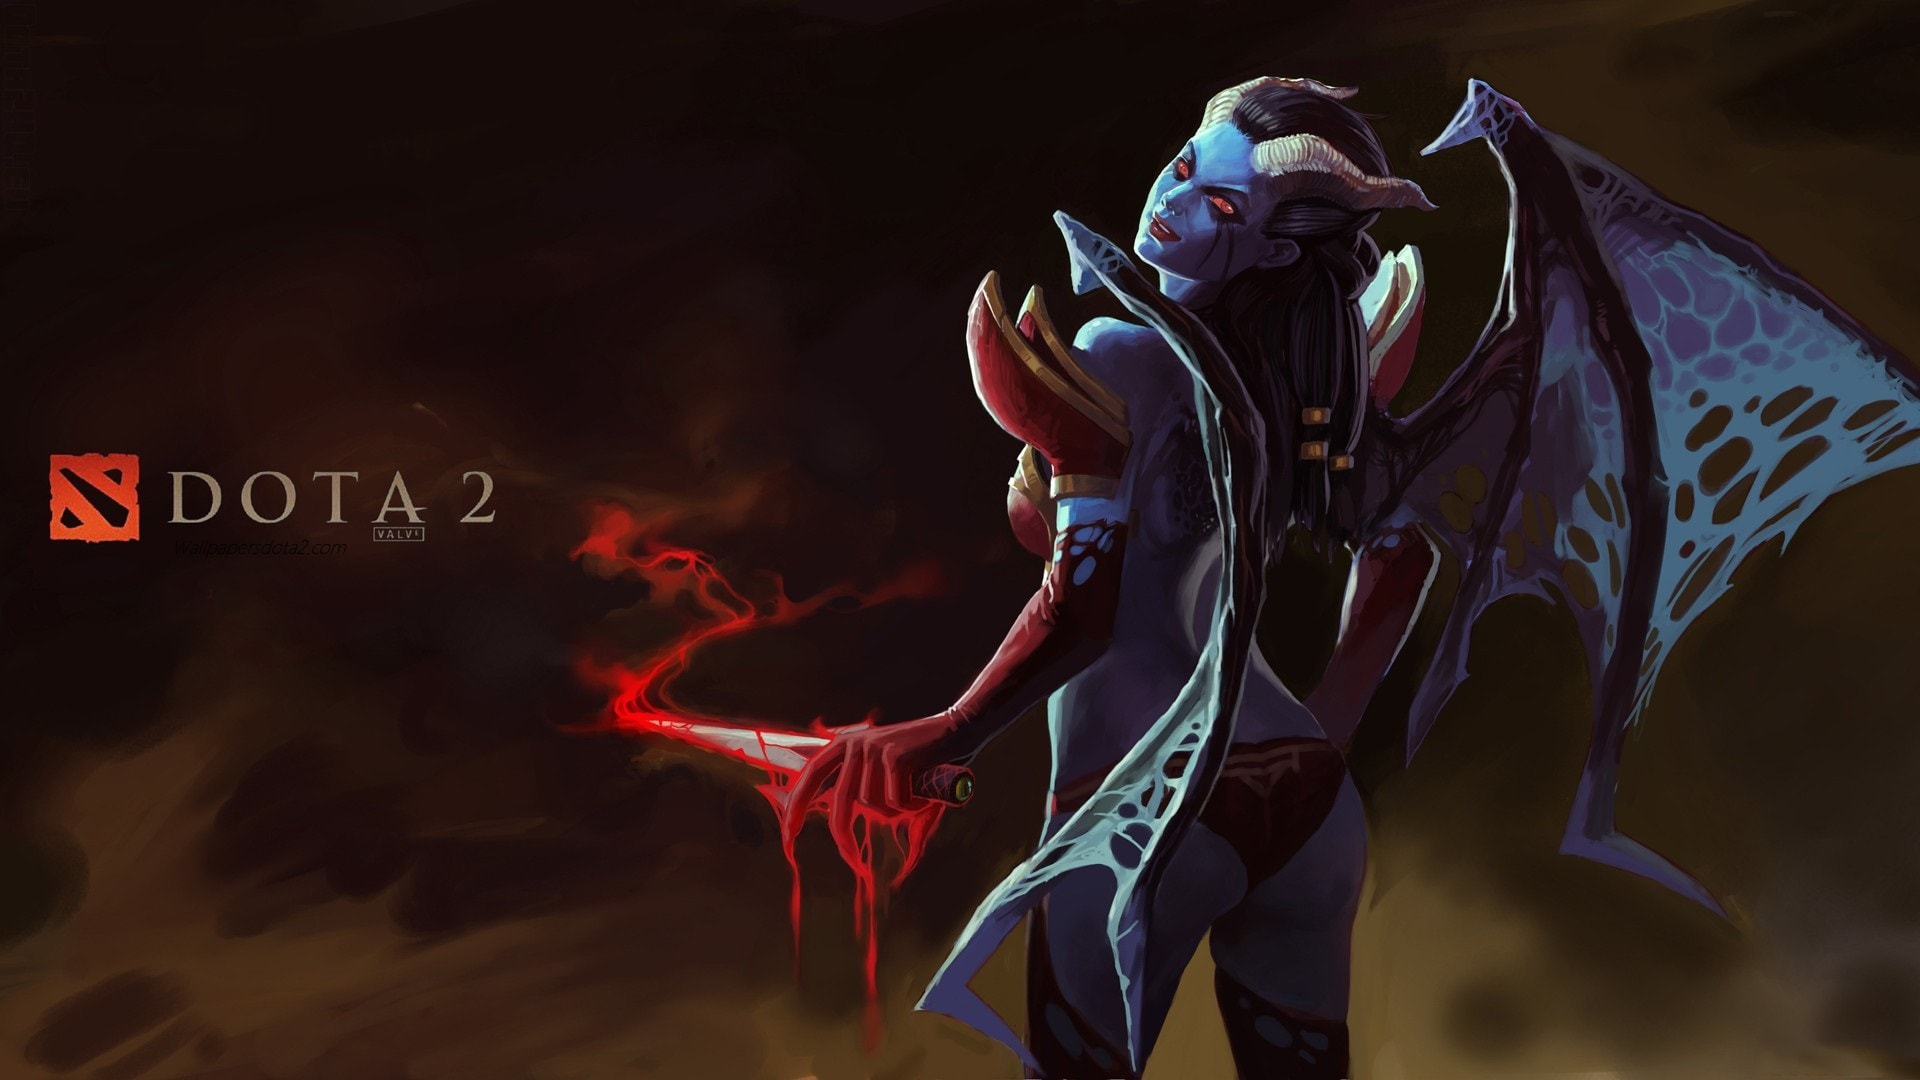 Dota 2 Queen Of Pain Wallpaper Mobile Is Cool Wallpapers